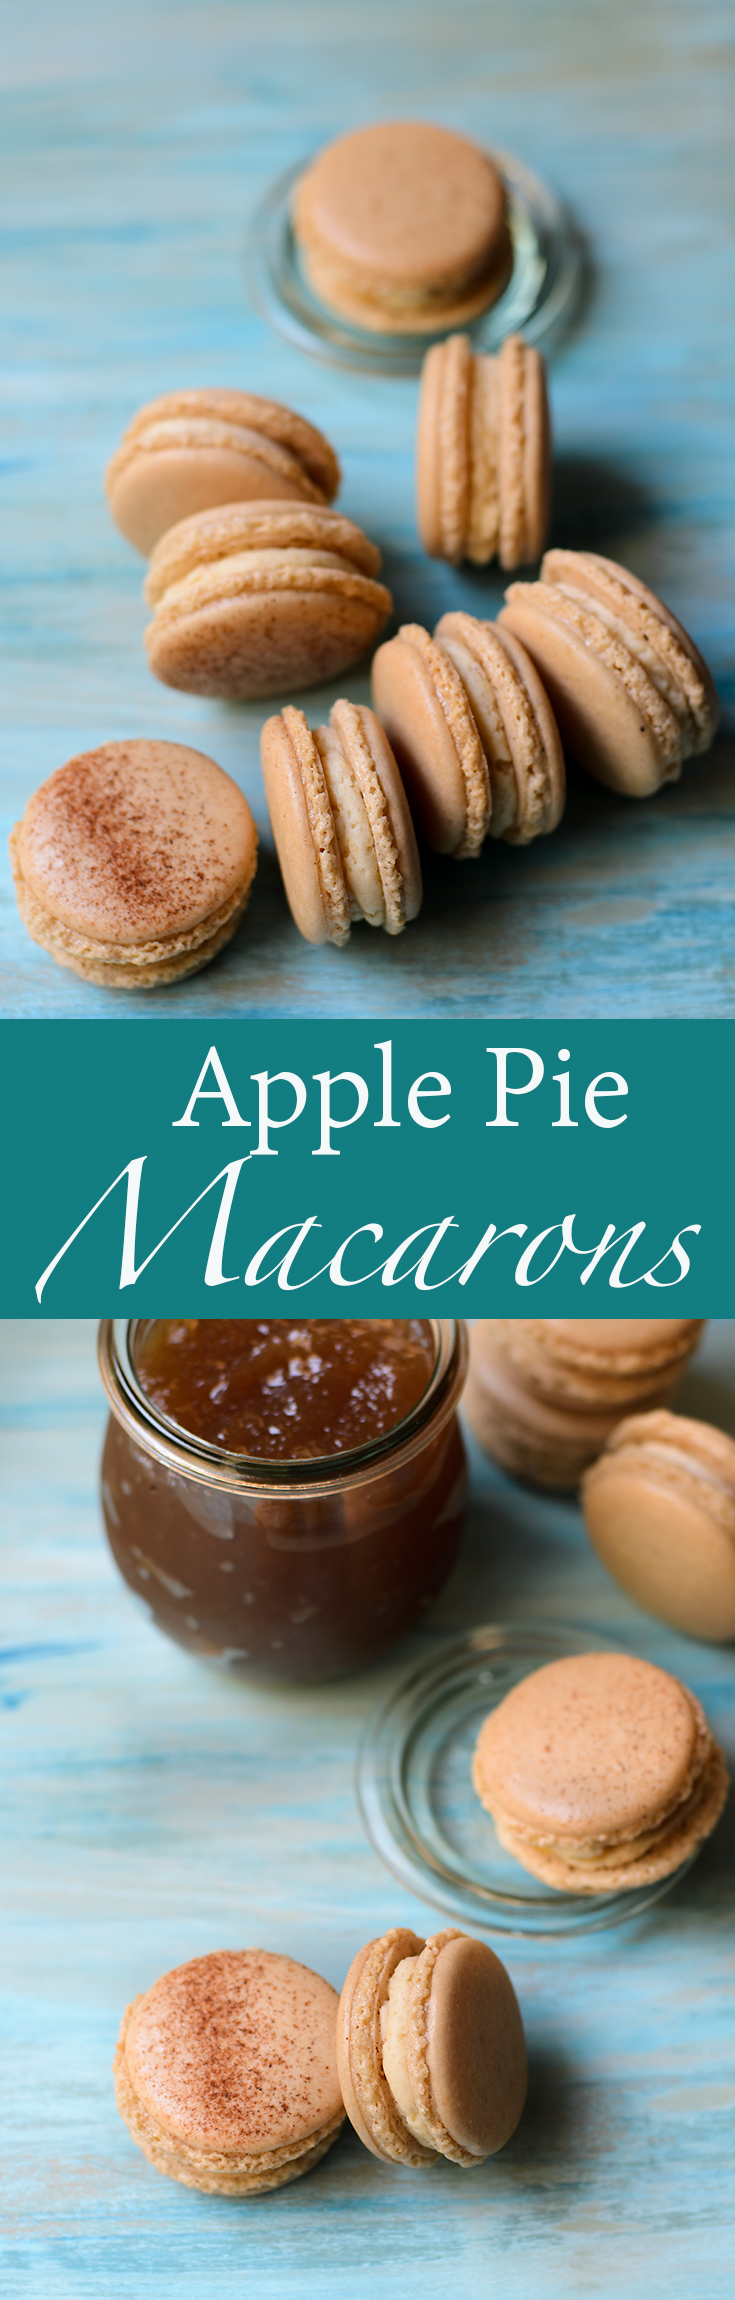 Apple pie macarons with apple pie buttercream and apple butter.